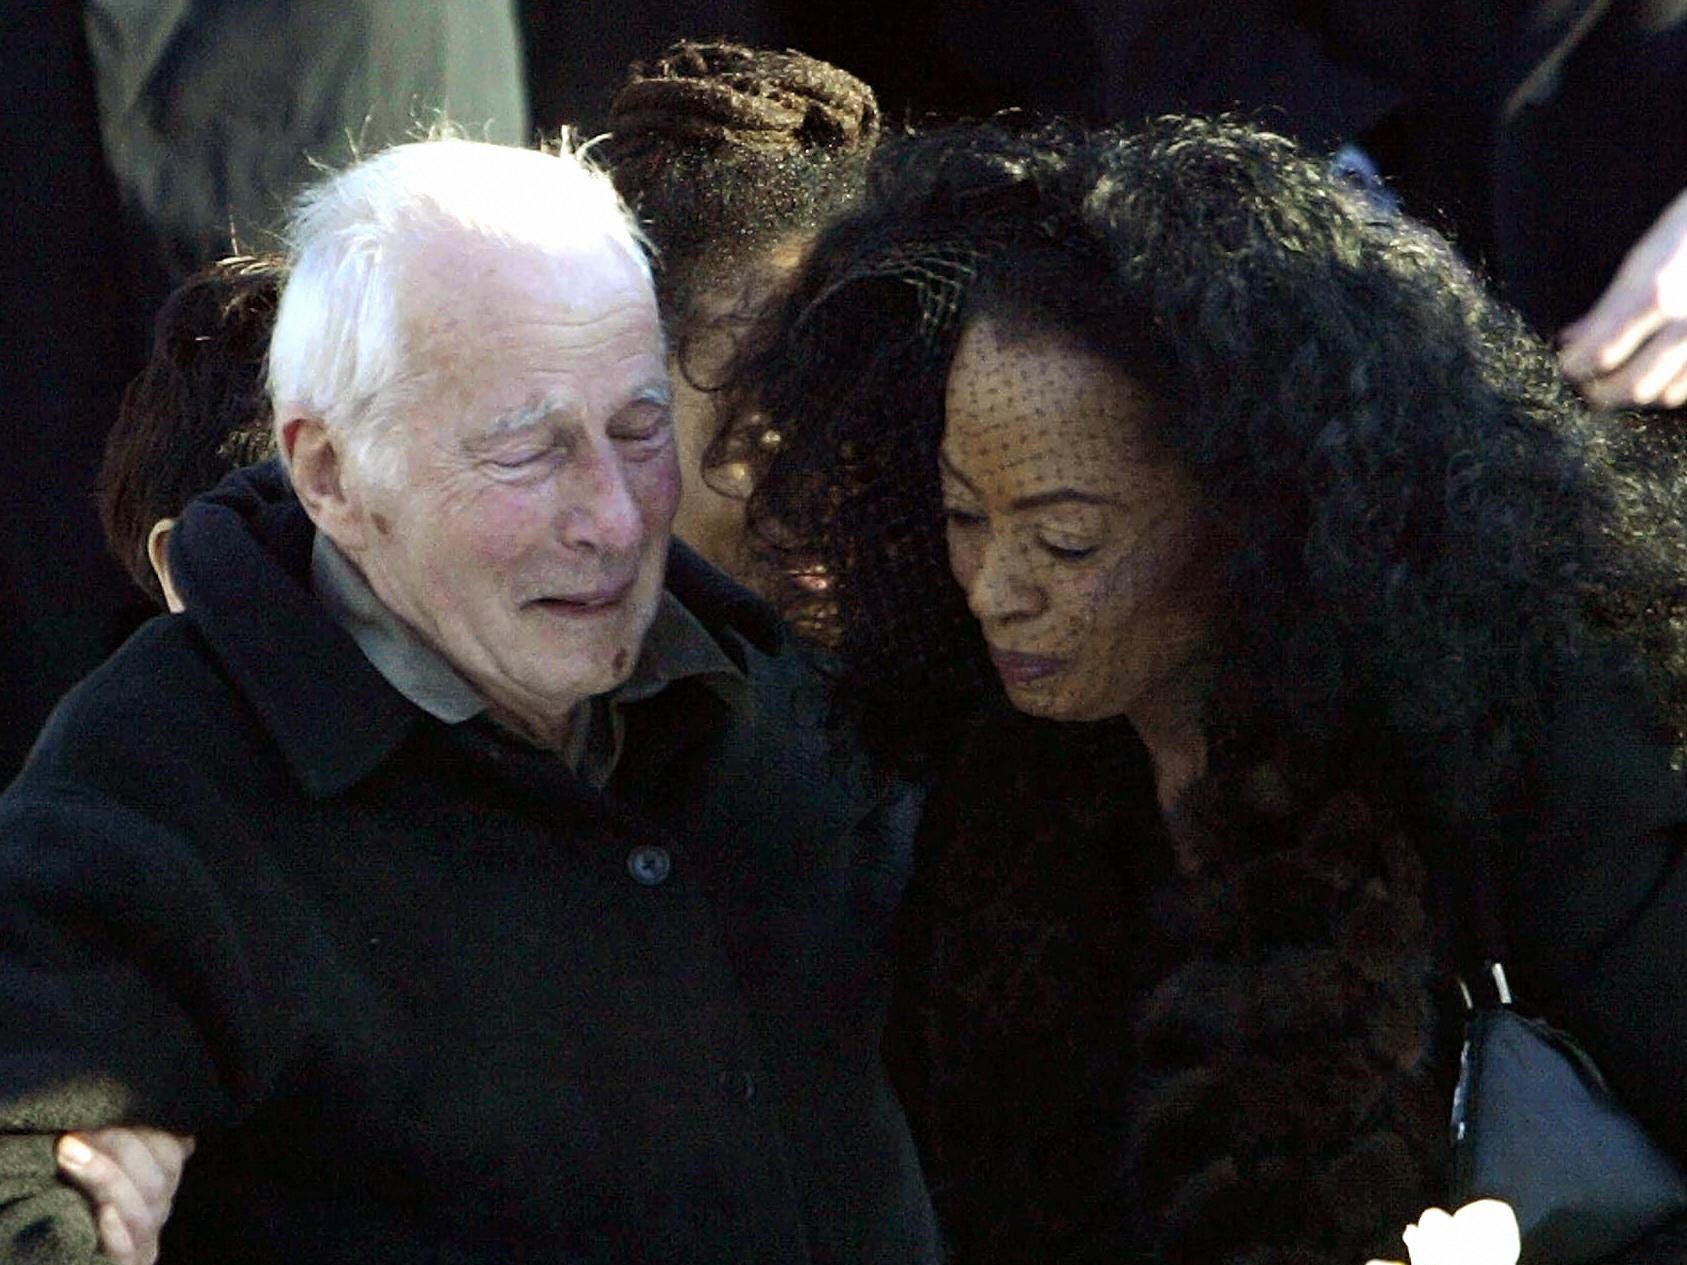 In 2004, Ross' ex-husband Arne Naess Jr.  plunged to his death from a cliff as he tried to descend a mountain in South Africa.  Above, Ross attends the Jan. 21 funeral in Oslo, Norway, mourning with her former father-in-law, Arne Naess.